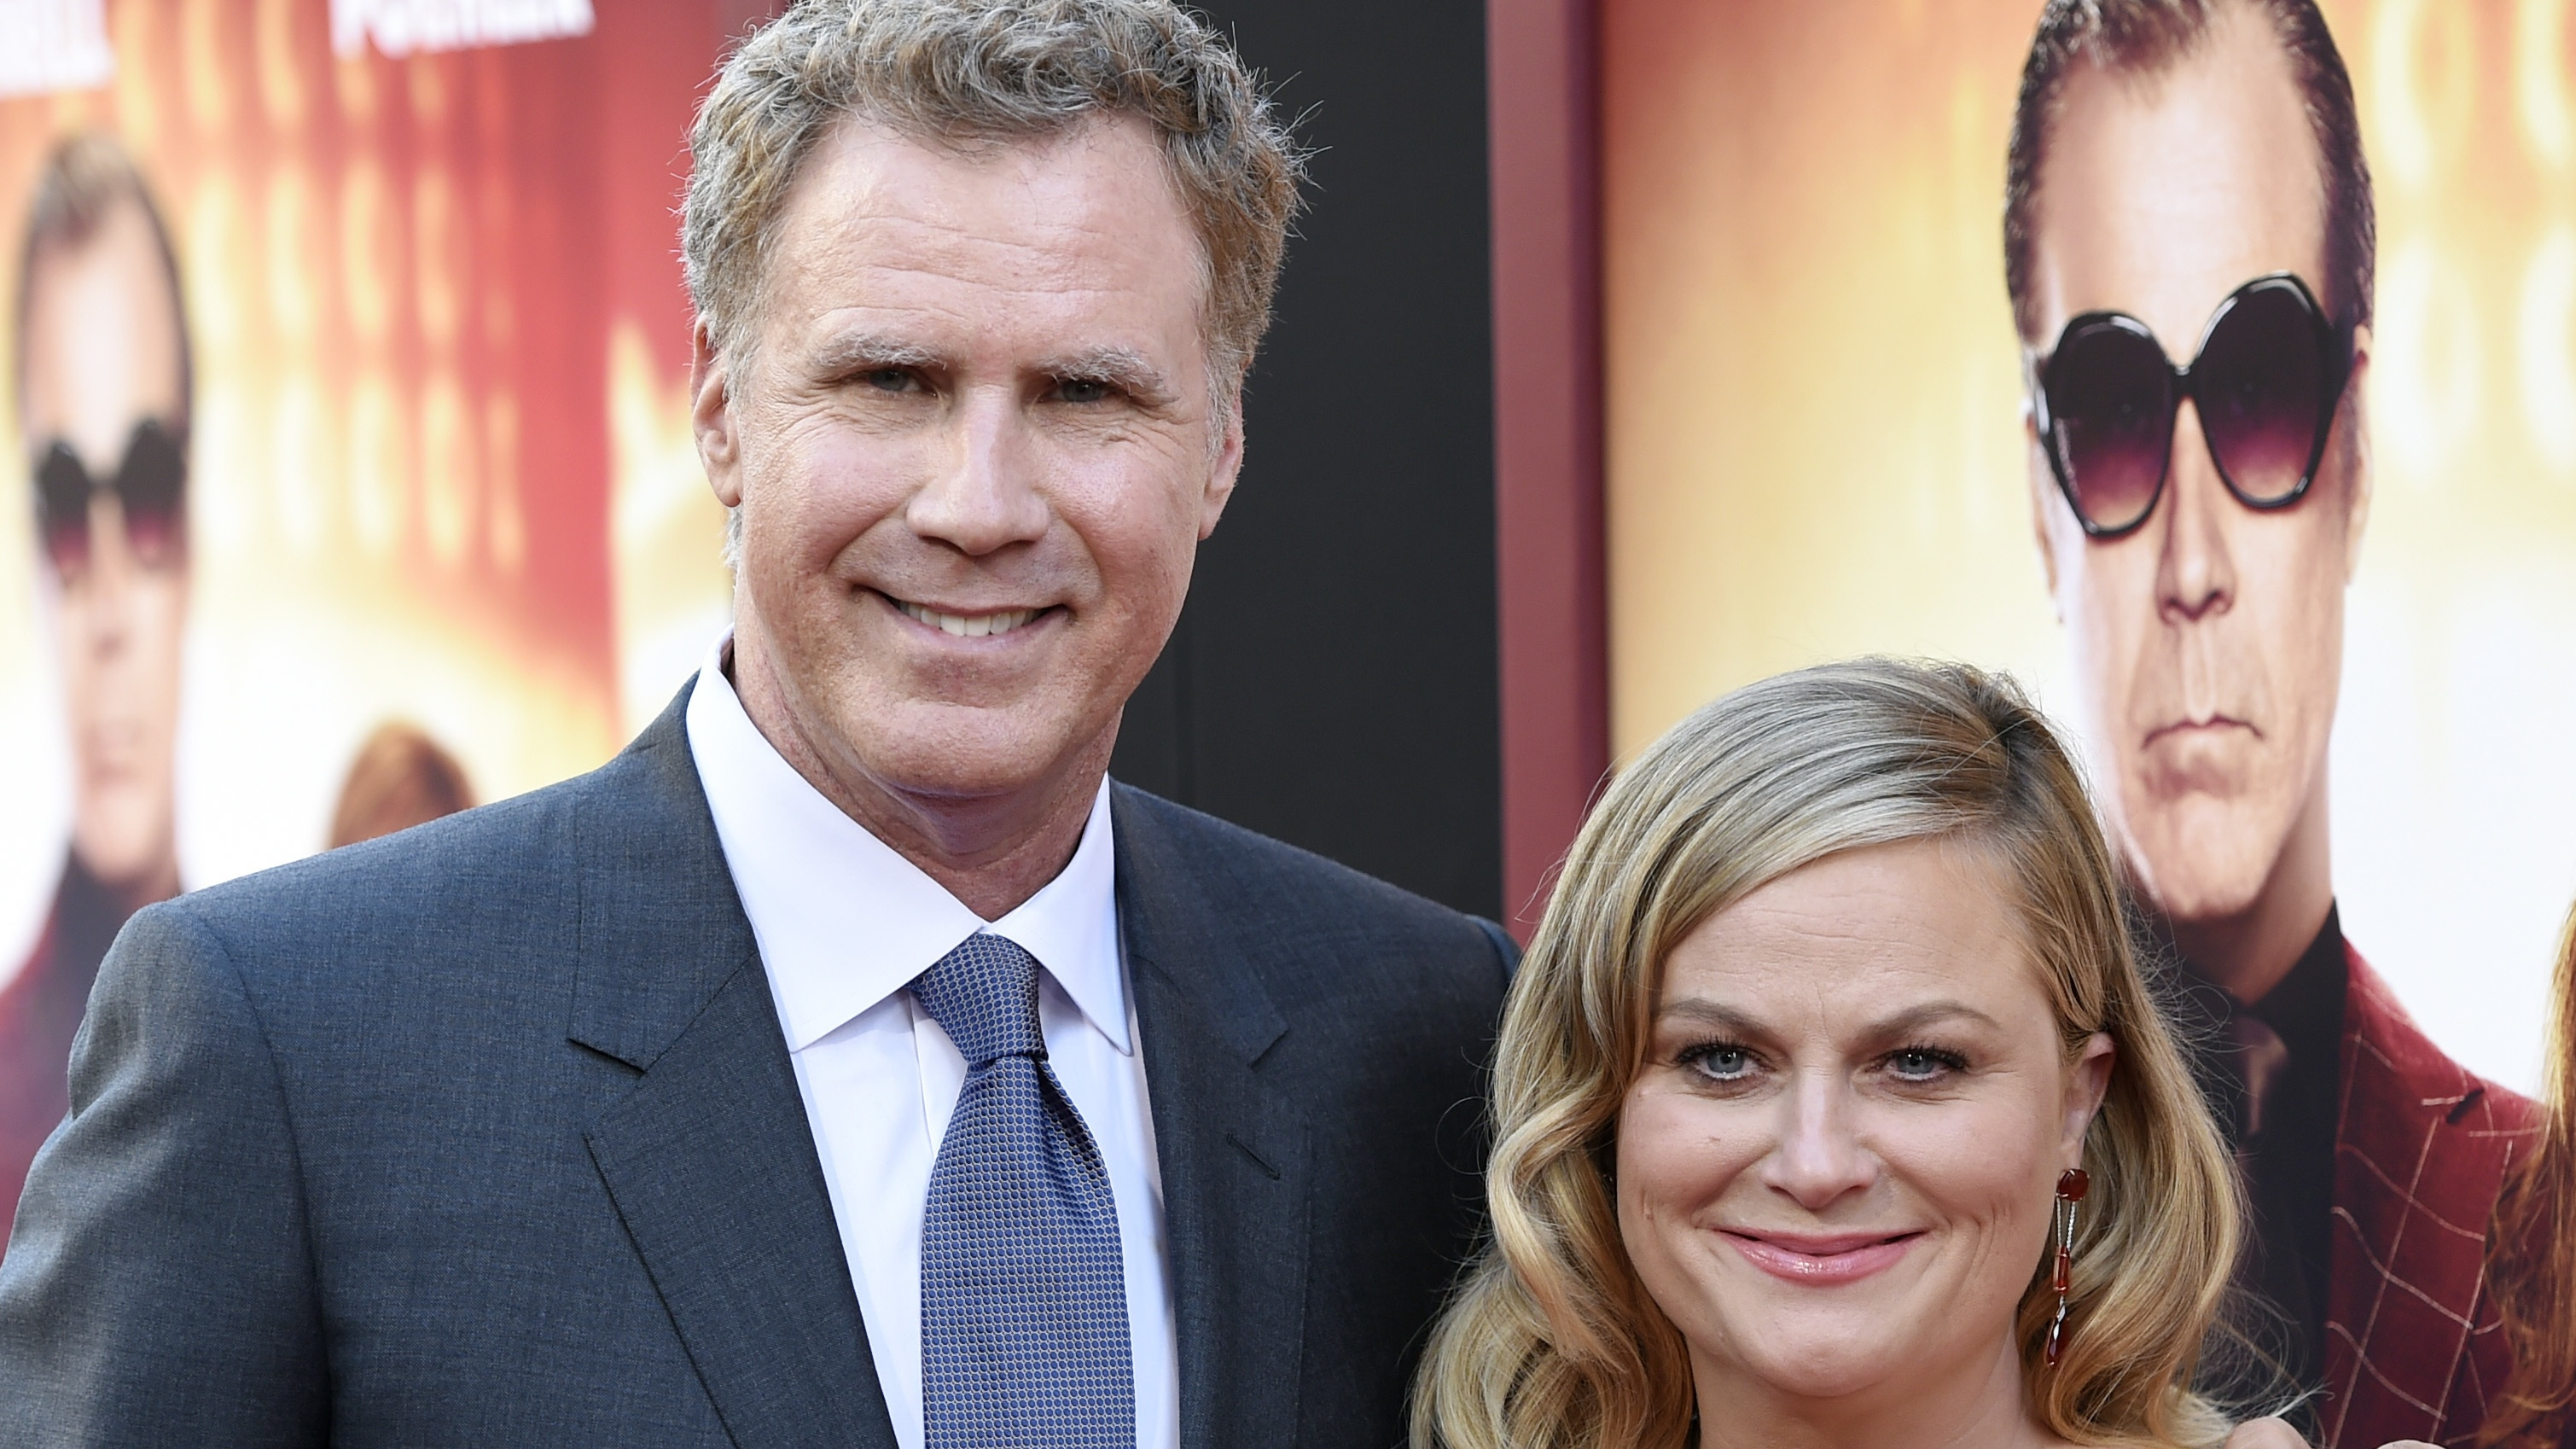 Will Ferrell and Amy Poehler at The House premiere